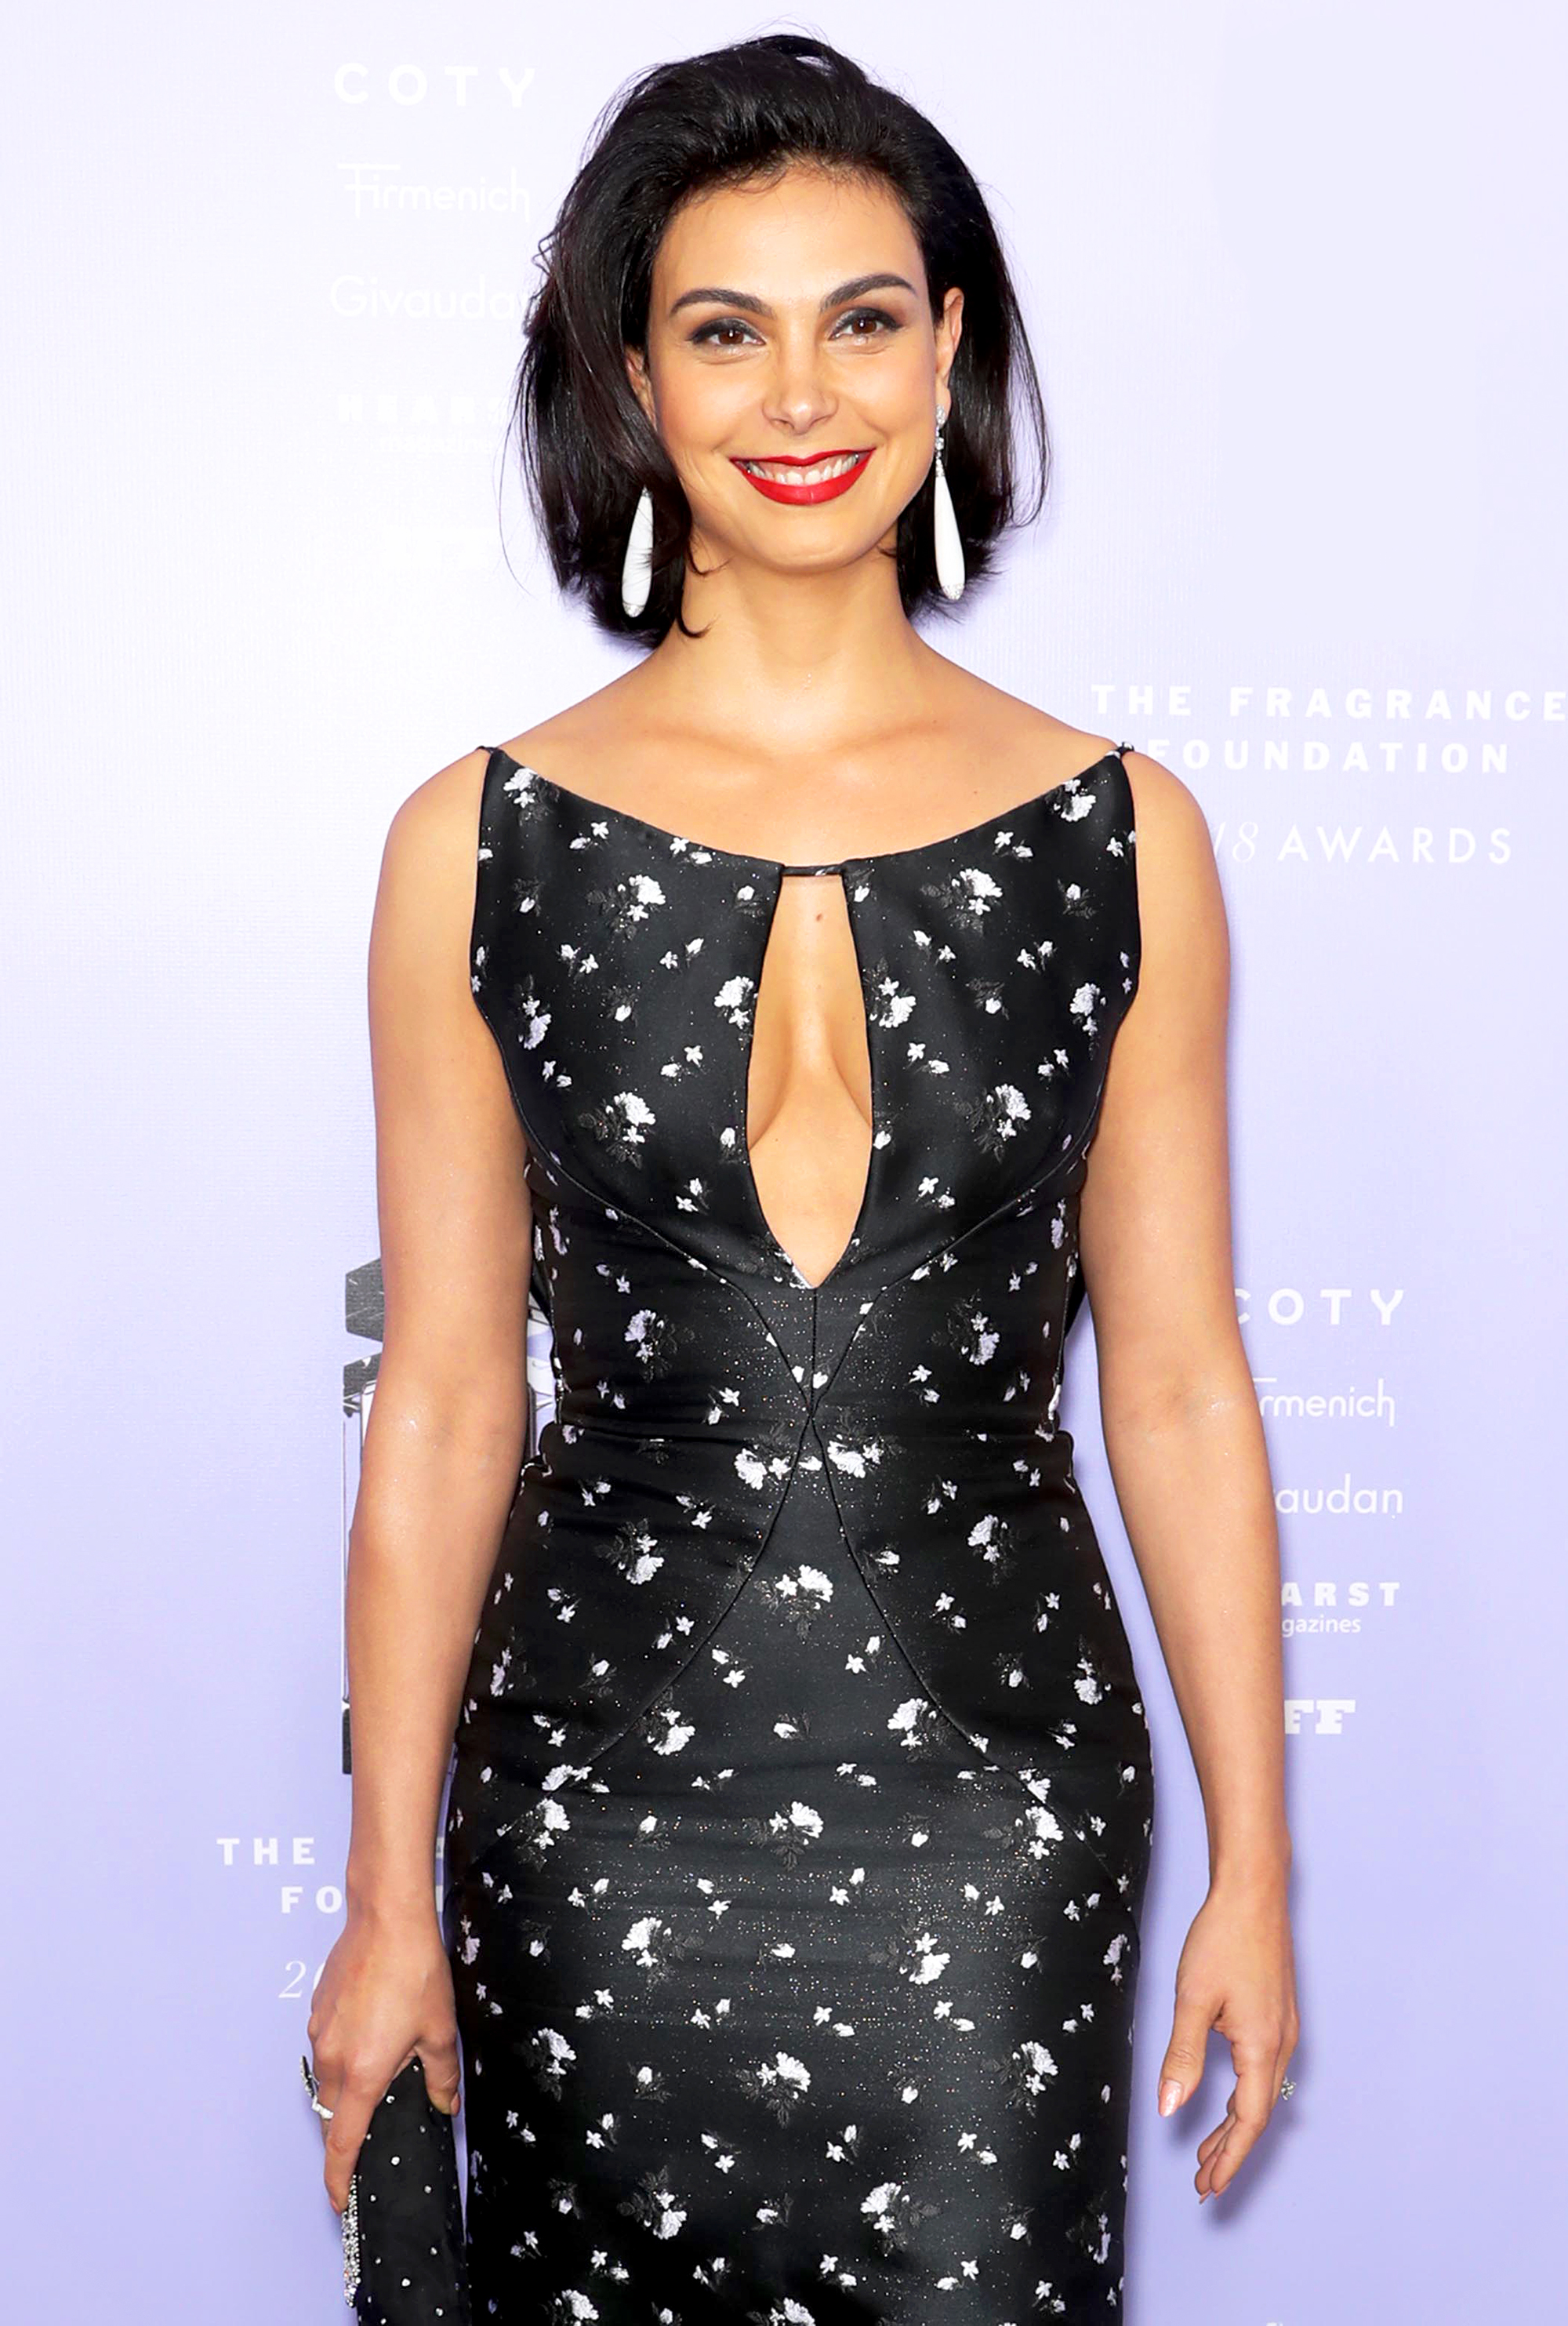 Pics Morena Baccarin nudes (17 photos), Ass, Leaked, Instagram, panties 2015